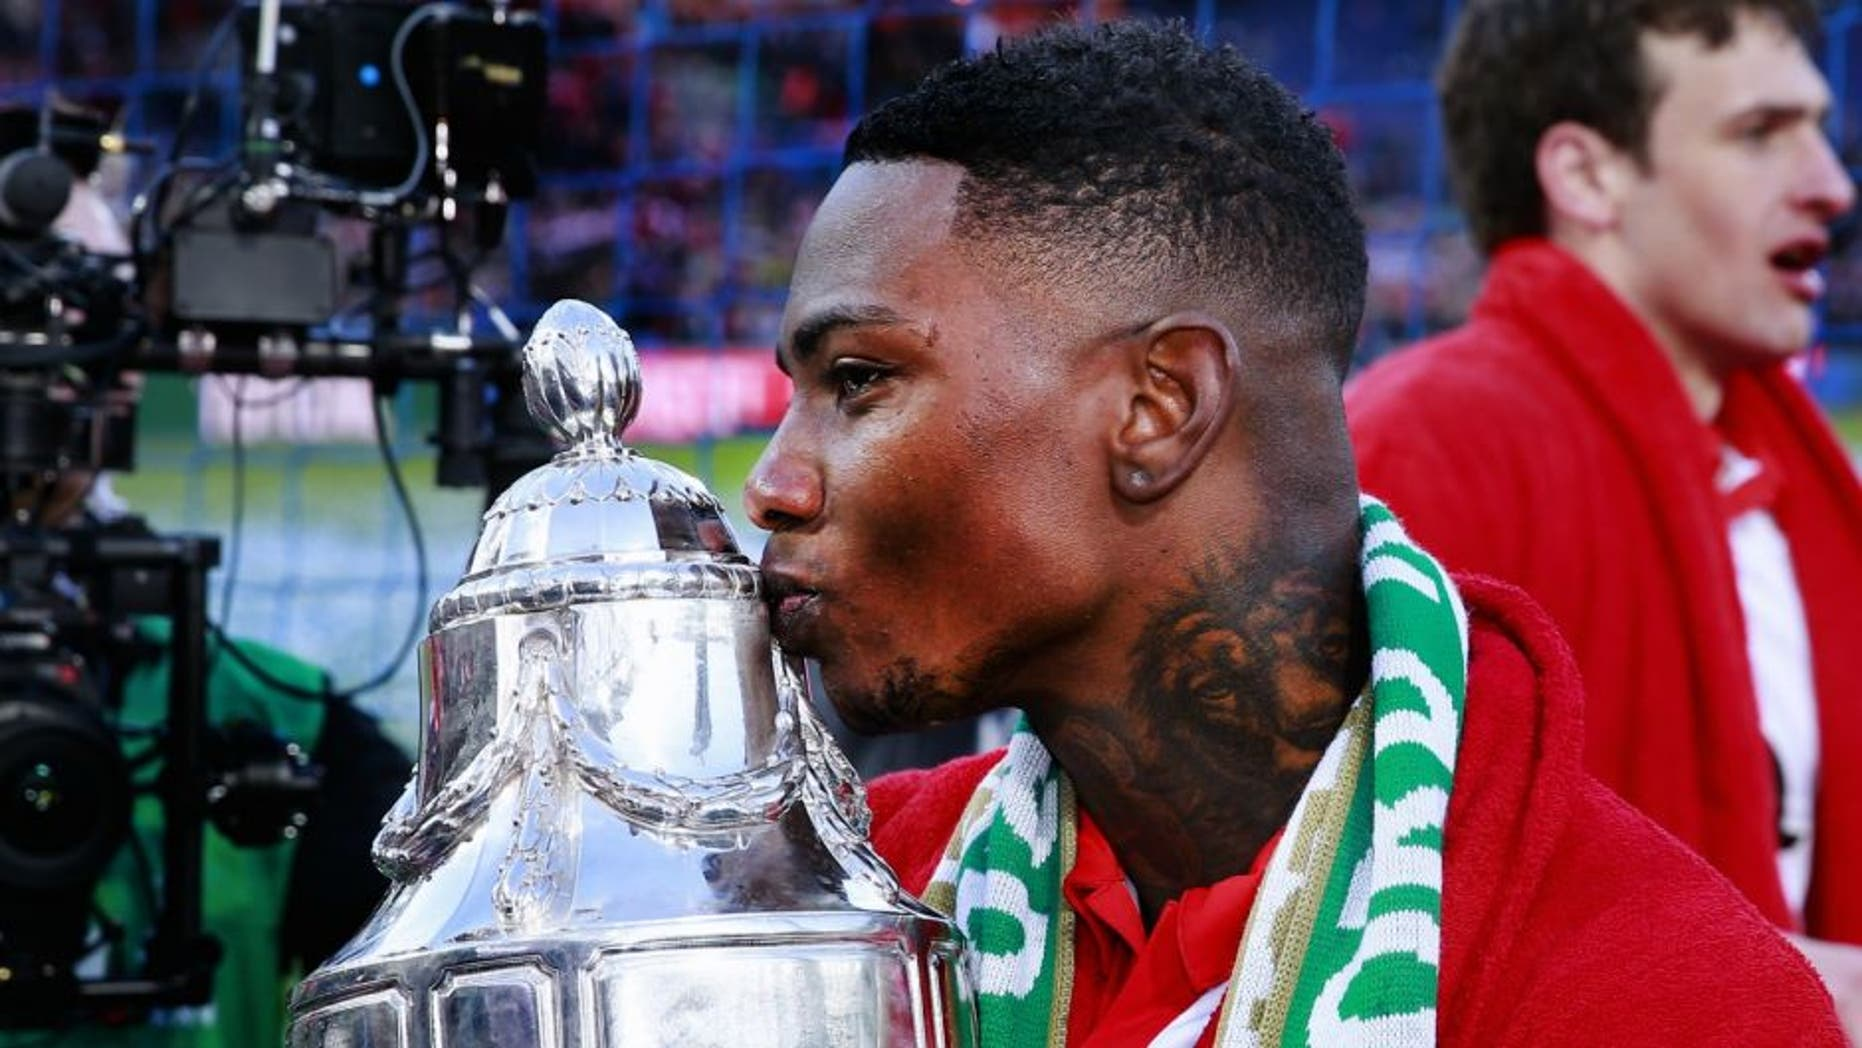 Eljero Elia KNVB bekerfinale during the Dutch Cup Final match between Feyenoord and FC Utrecht on April 24, 2016 at the Kuip stadium in Rotterdam, The Netherlands.(Photo by VI Images via Getty Images)